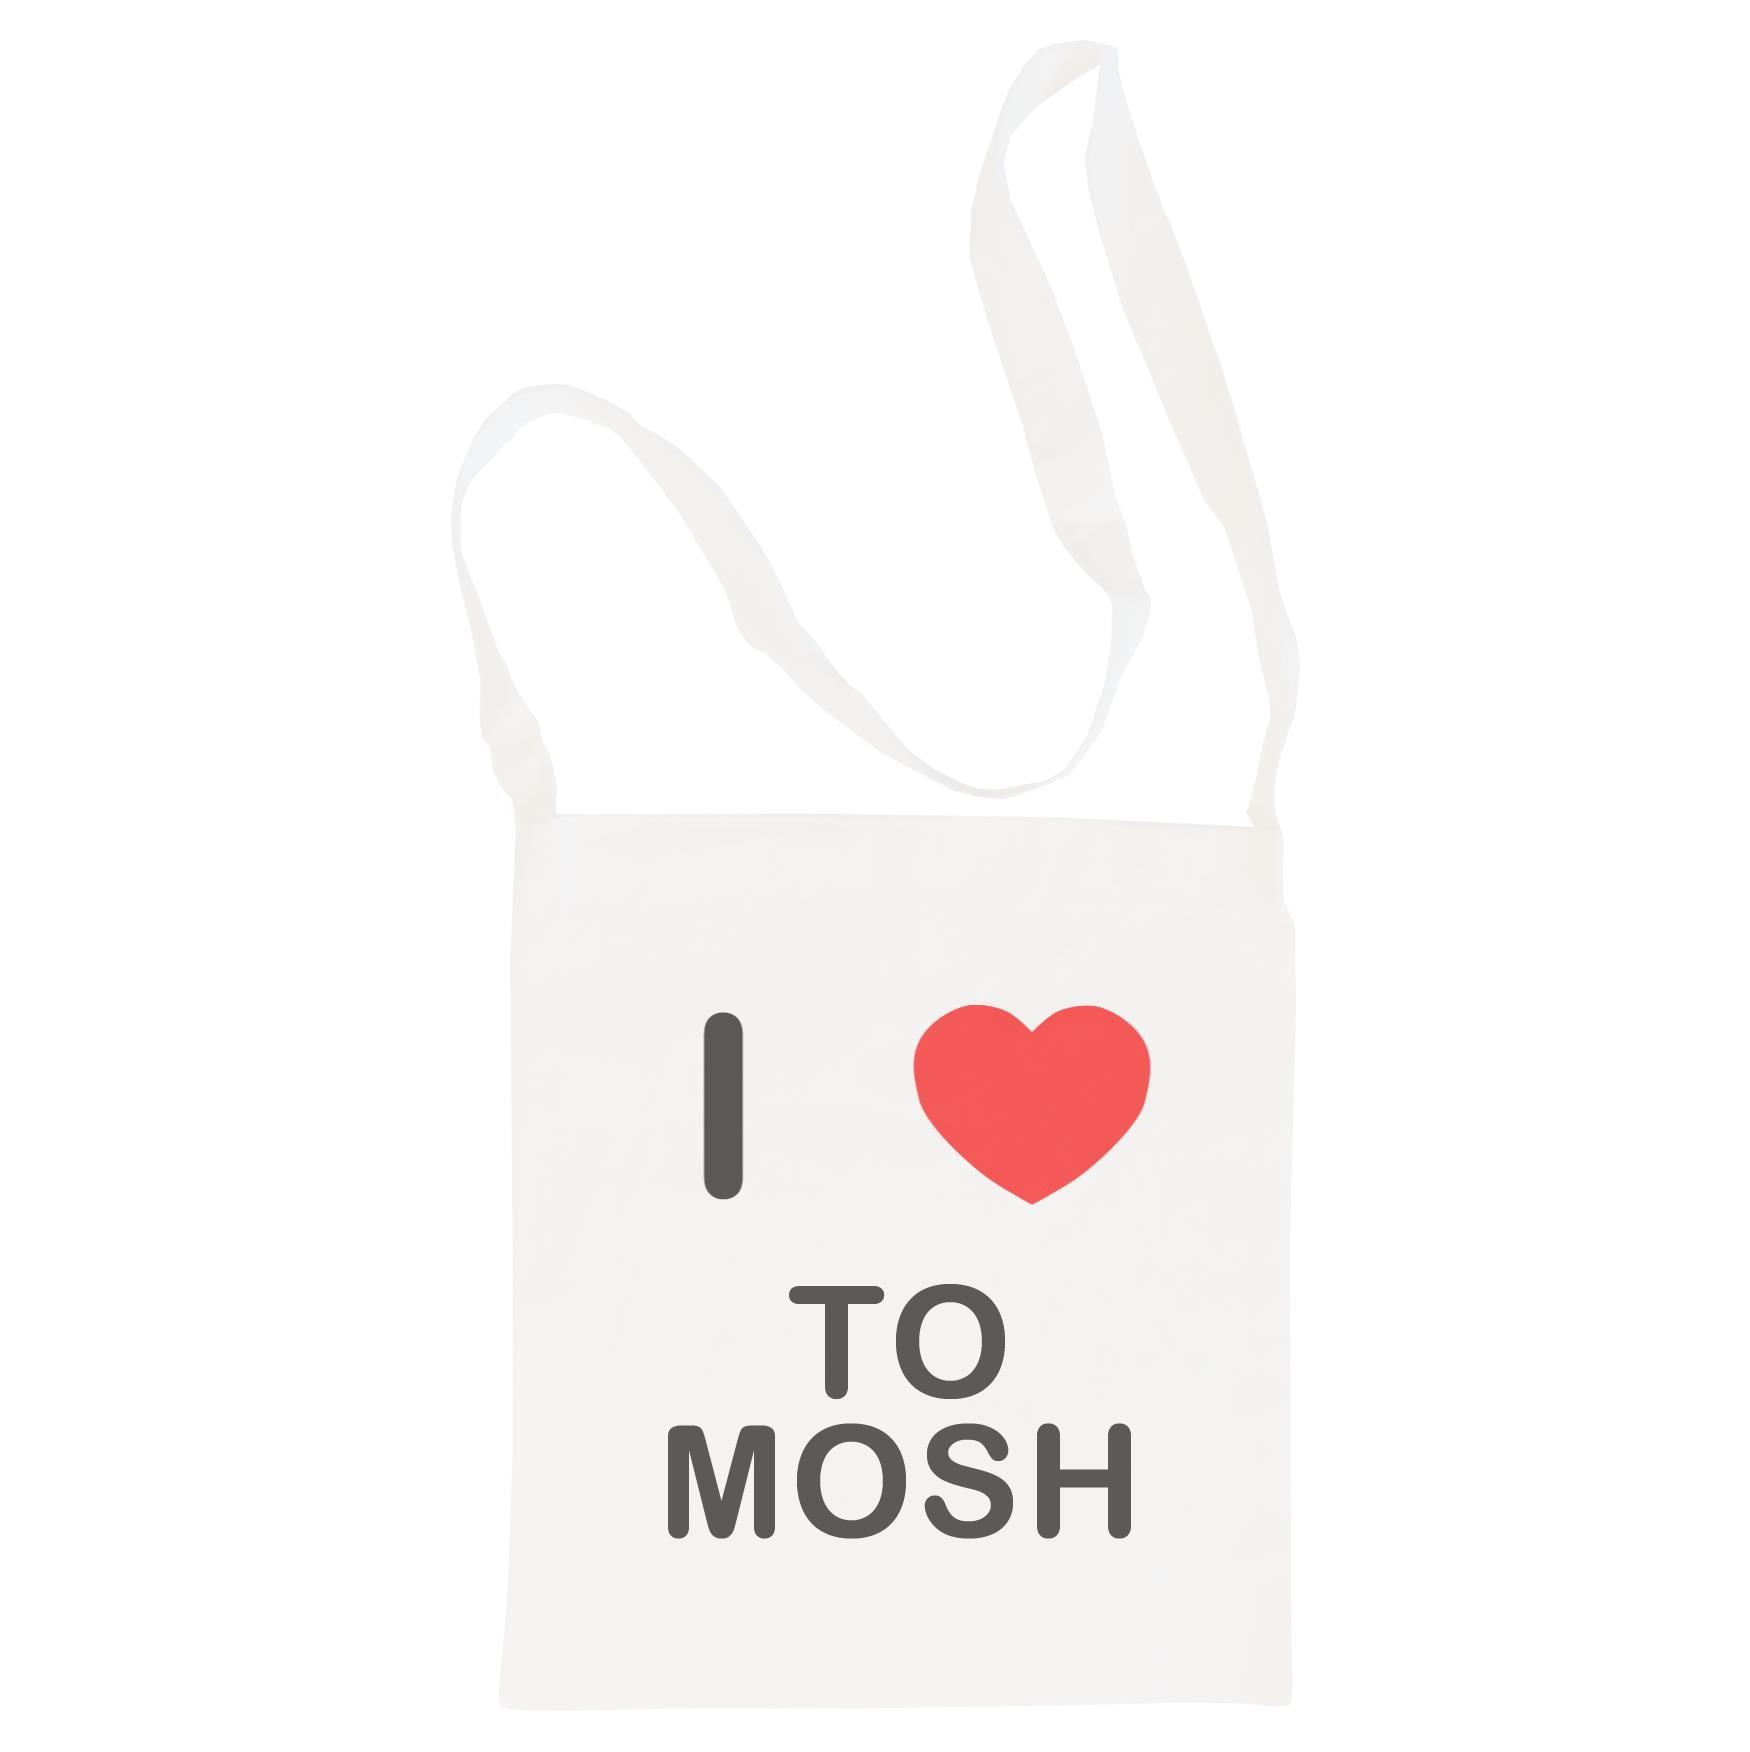 I Love To Mosh - Cotton Bag | Size choice Tote, Shopper or Sling